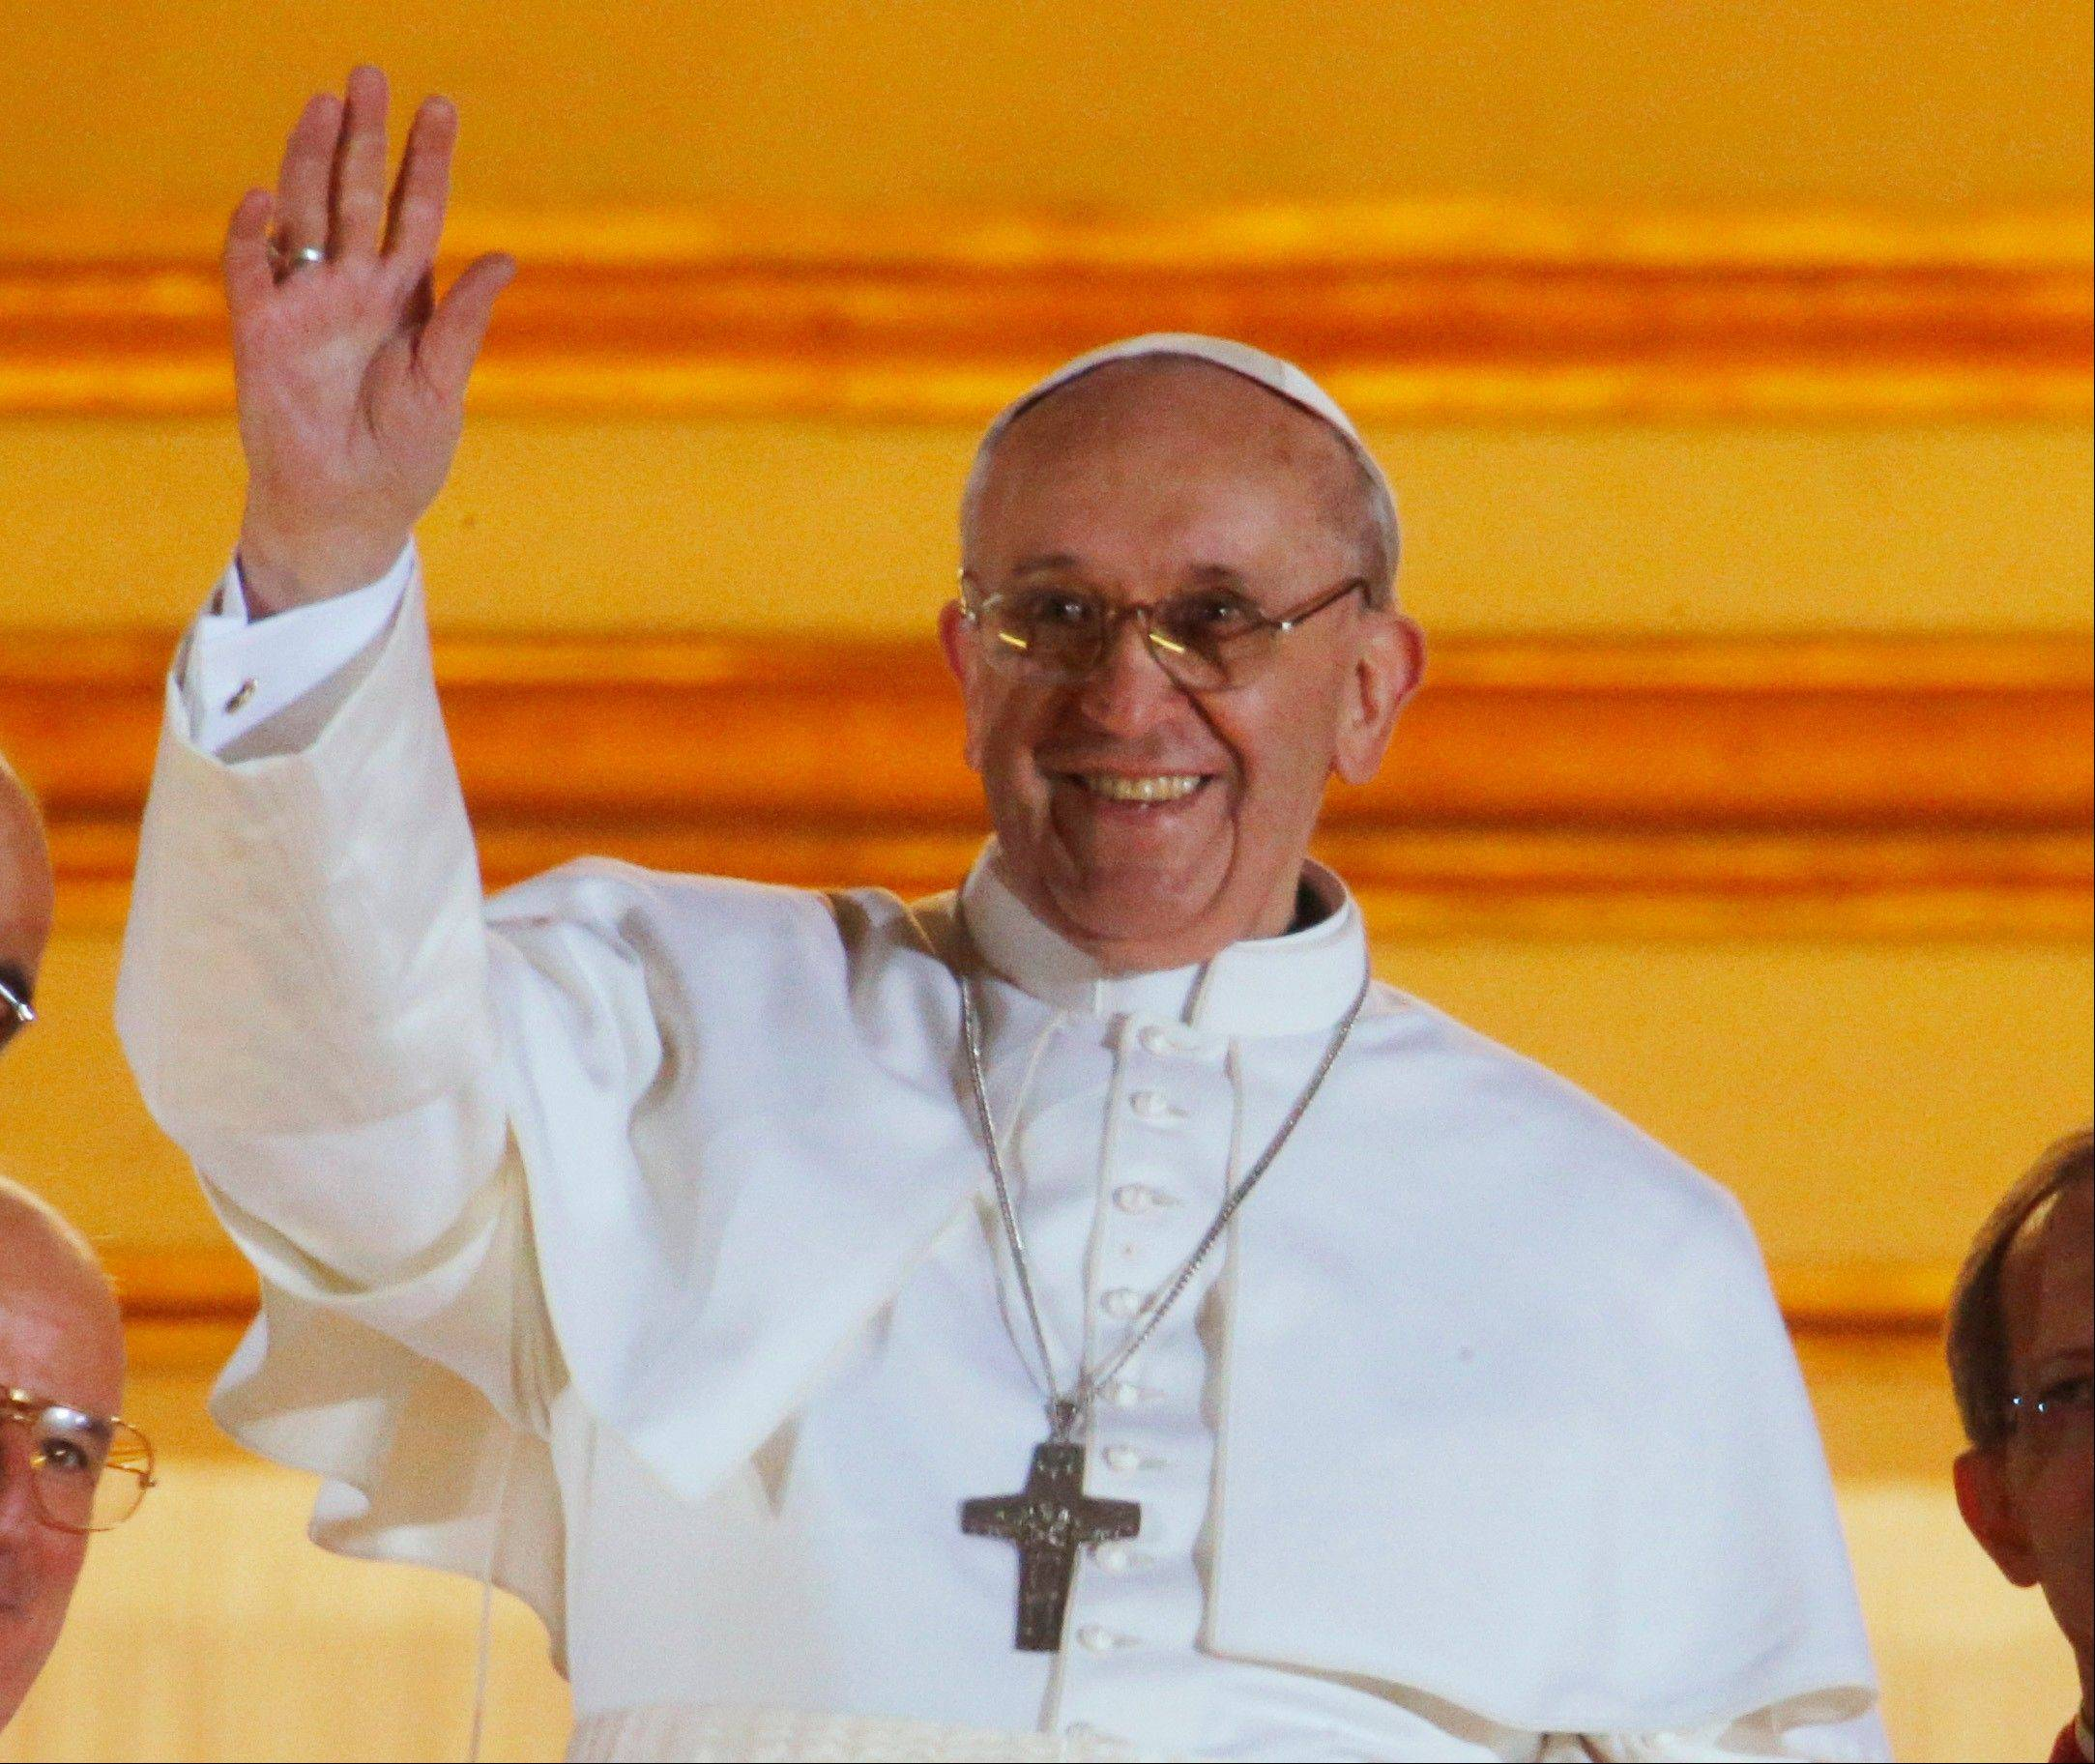 Pope Francis waves to the crowd Wednesday from the central balcony of St. Peter�s Basilica at the Vatican.